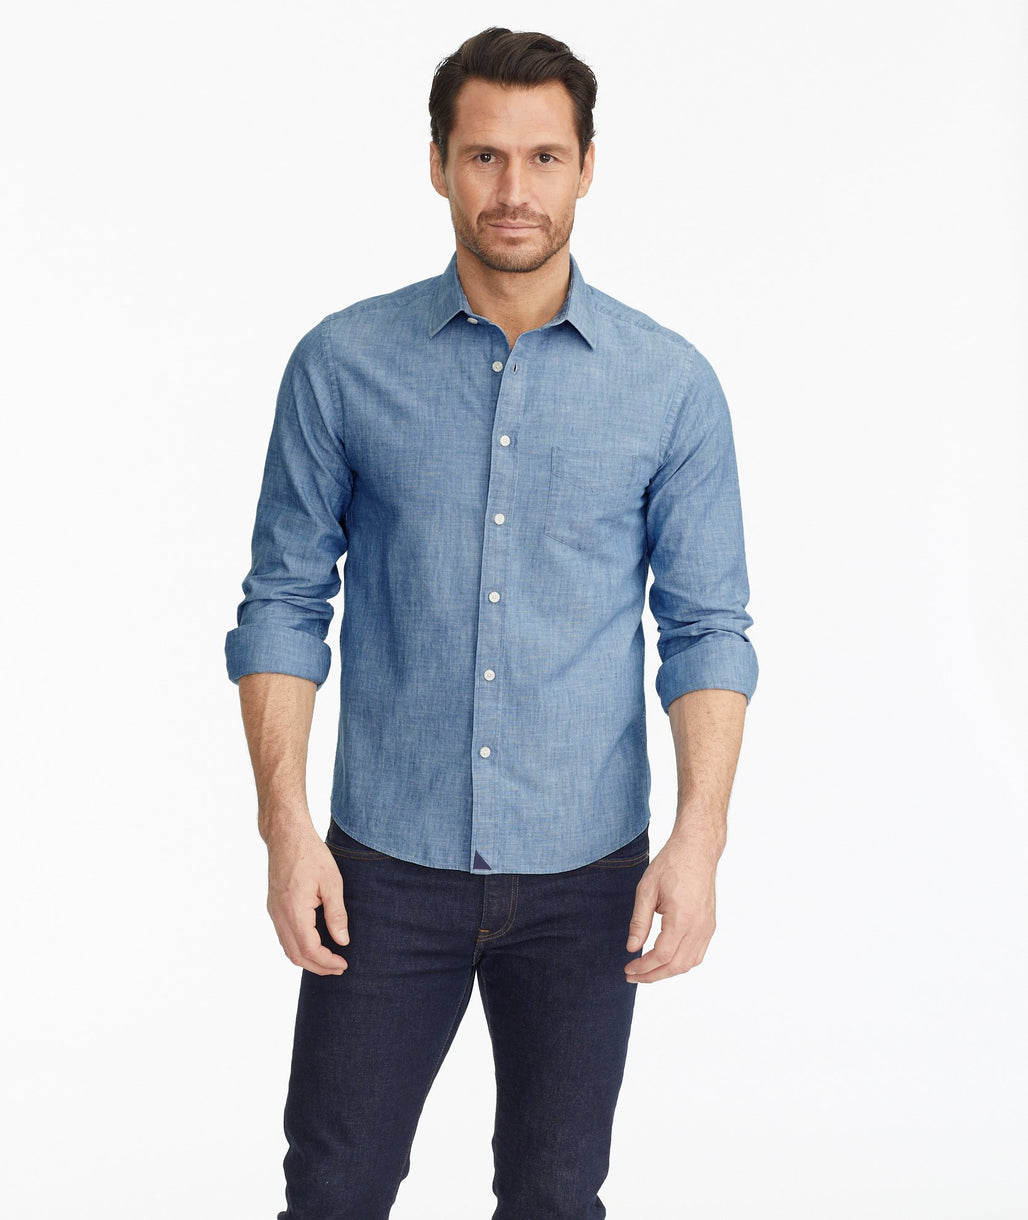 Model wearing a Light Blue Classic Chambray Shirt